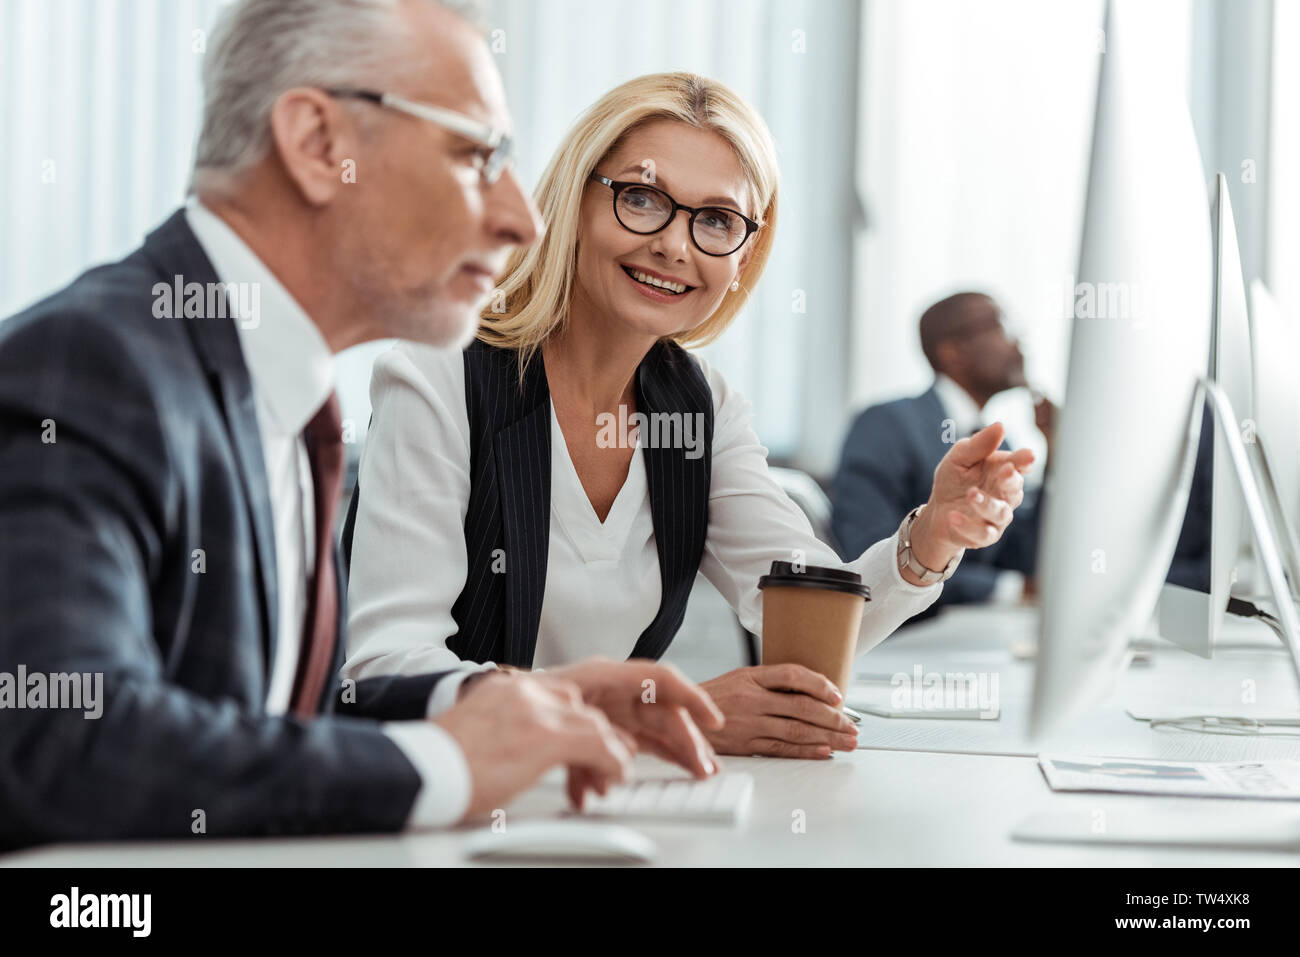 selective focus of blonde smiling businesswoman in glasses pointing with finger while looking at coworker Stock Photo